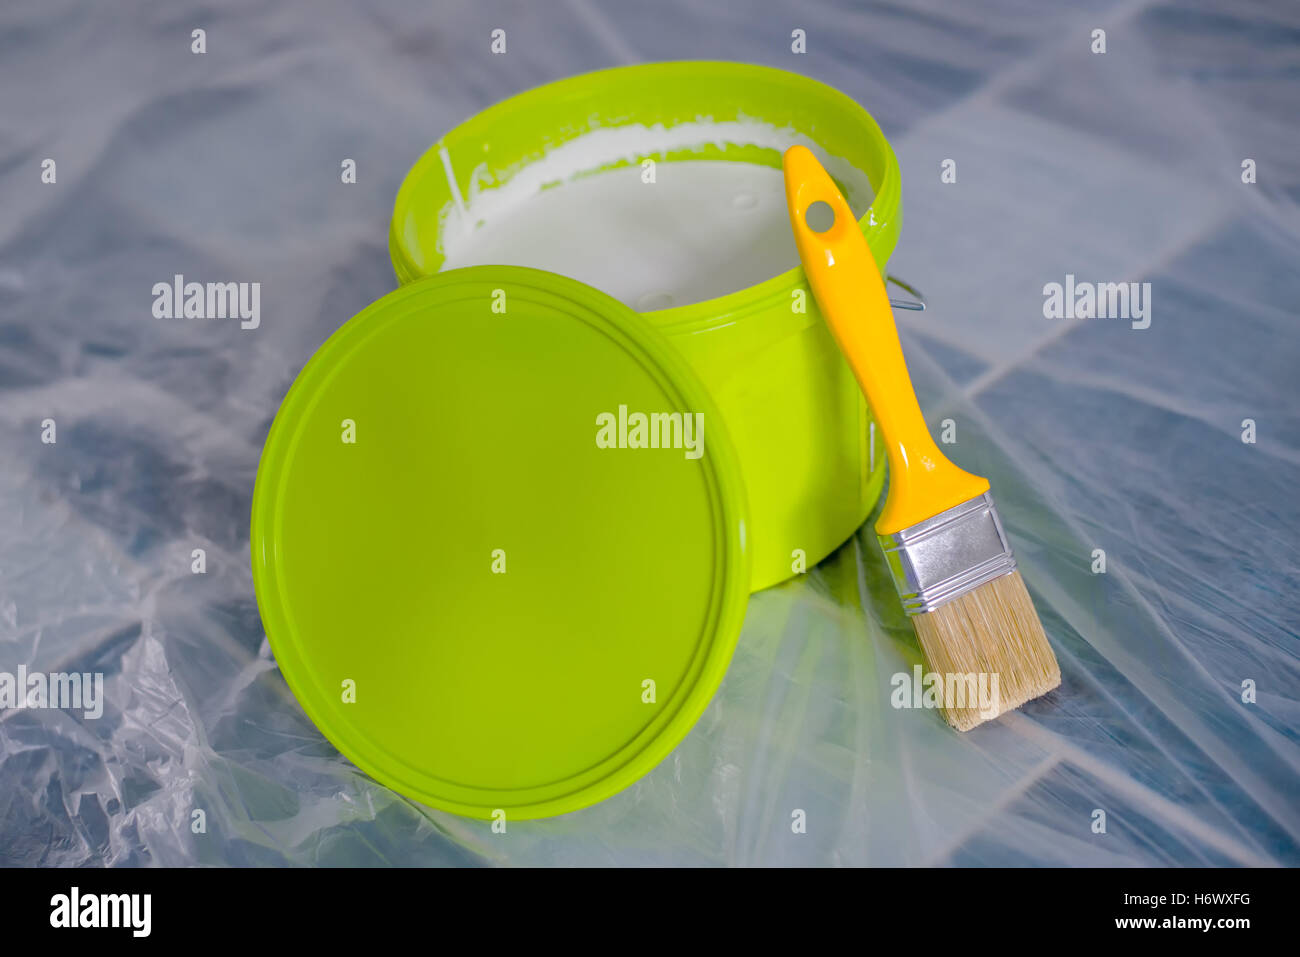 Yellow Paint Brush And Green Bucket On The Floor, Ready For Housework  Project And Walls Redecoration